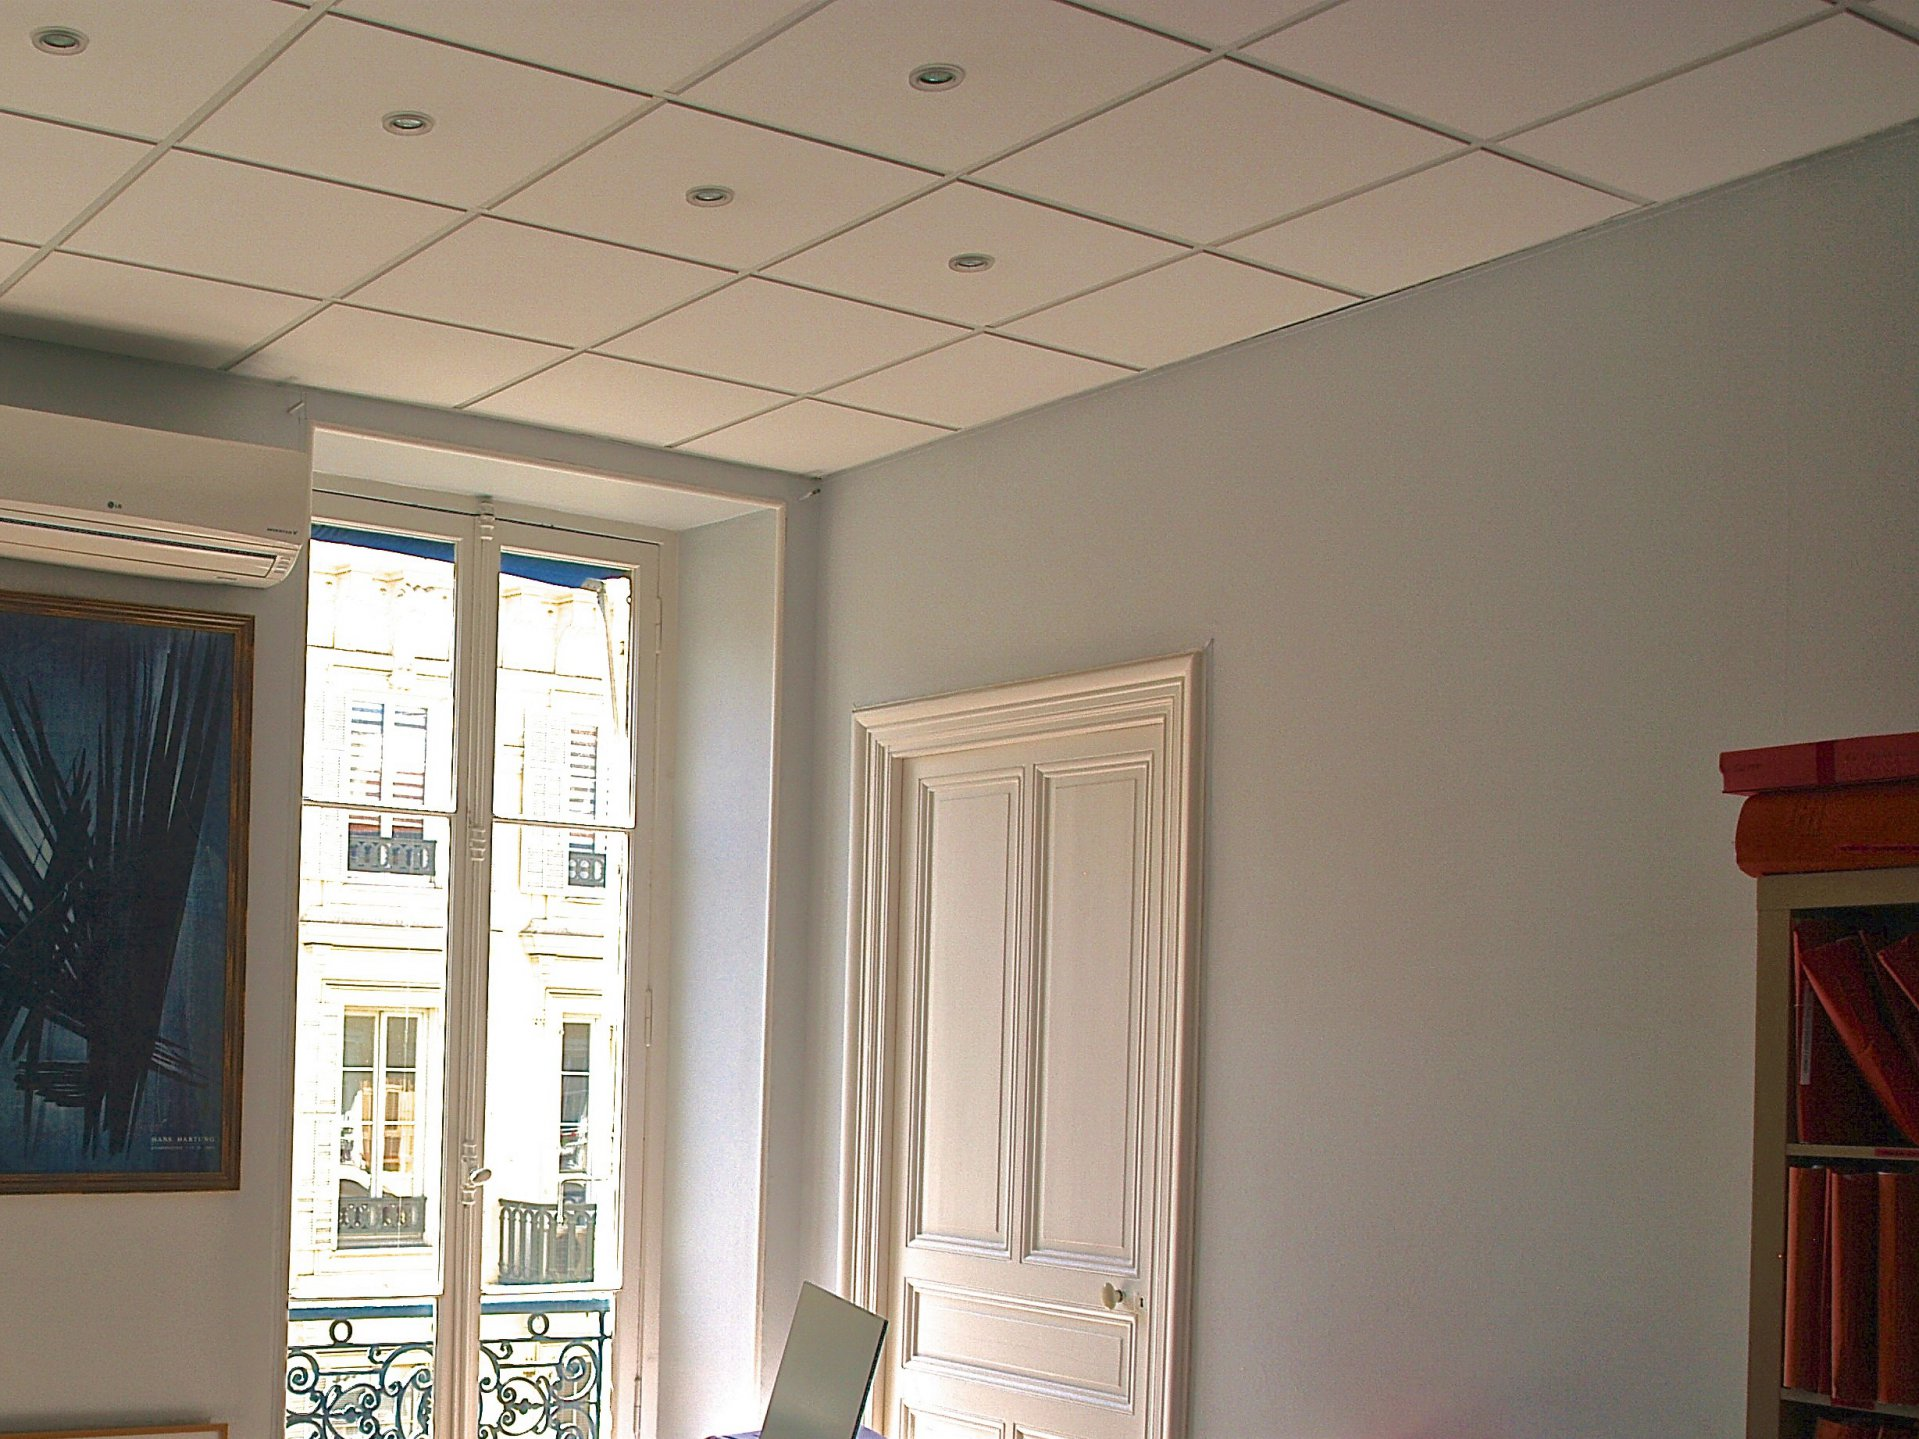 153square meter Carré D'or